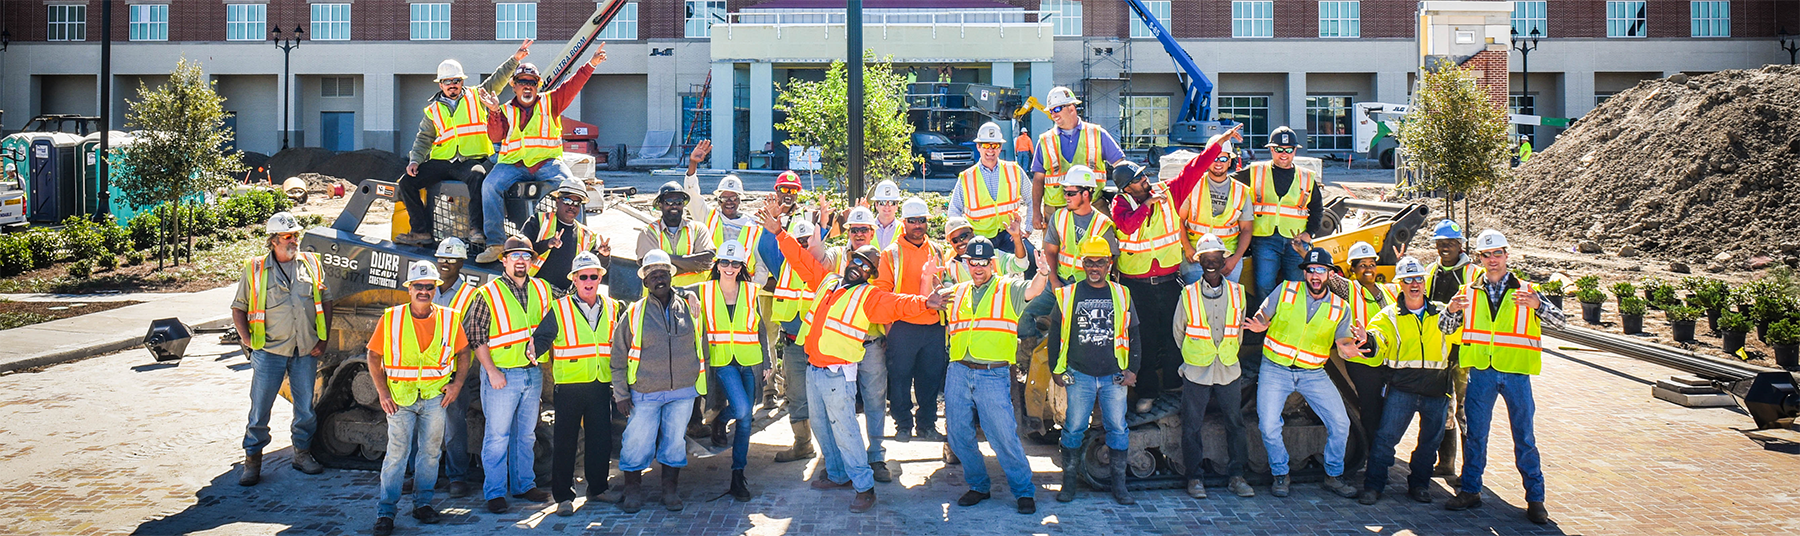 a group shot of Durr employees at a project site with their hands raised in the air for celebration